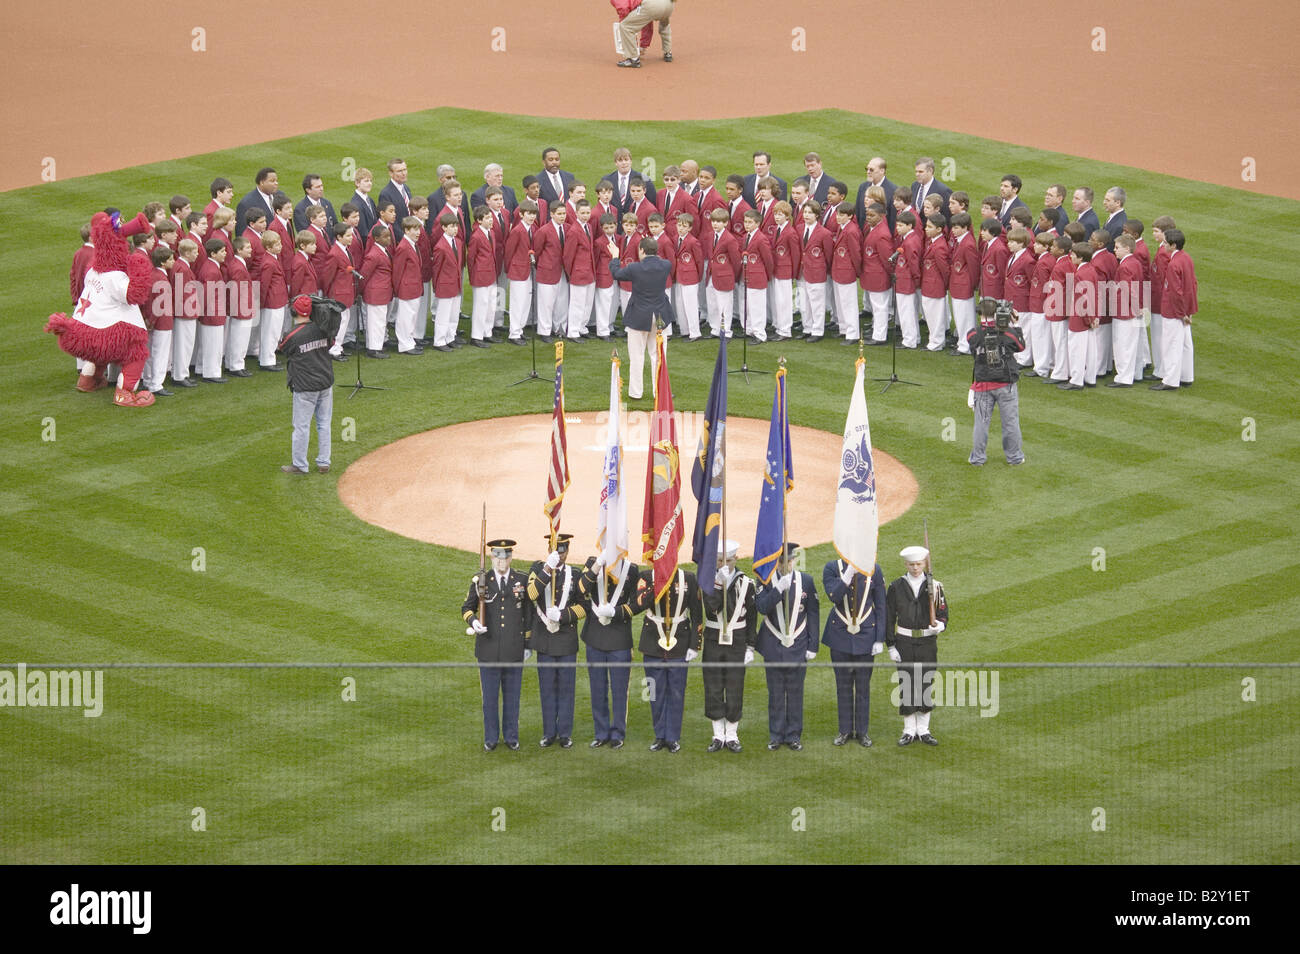 Opening Day Ceremonies featuring military color guard and boys choir, Philadelphia PA - Stock Image